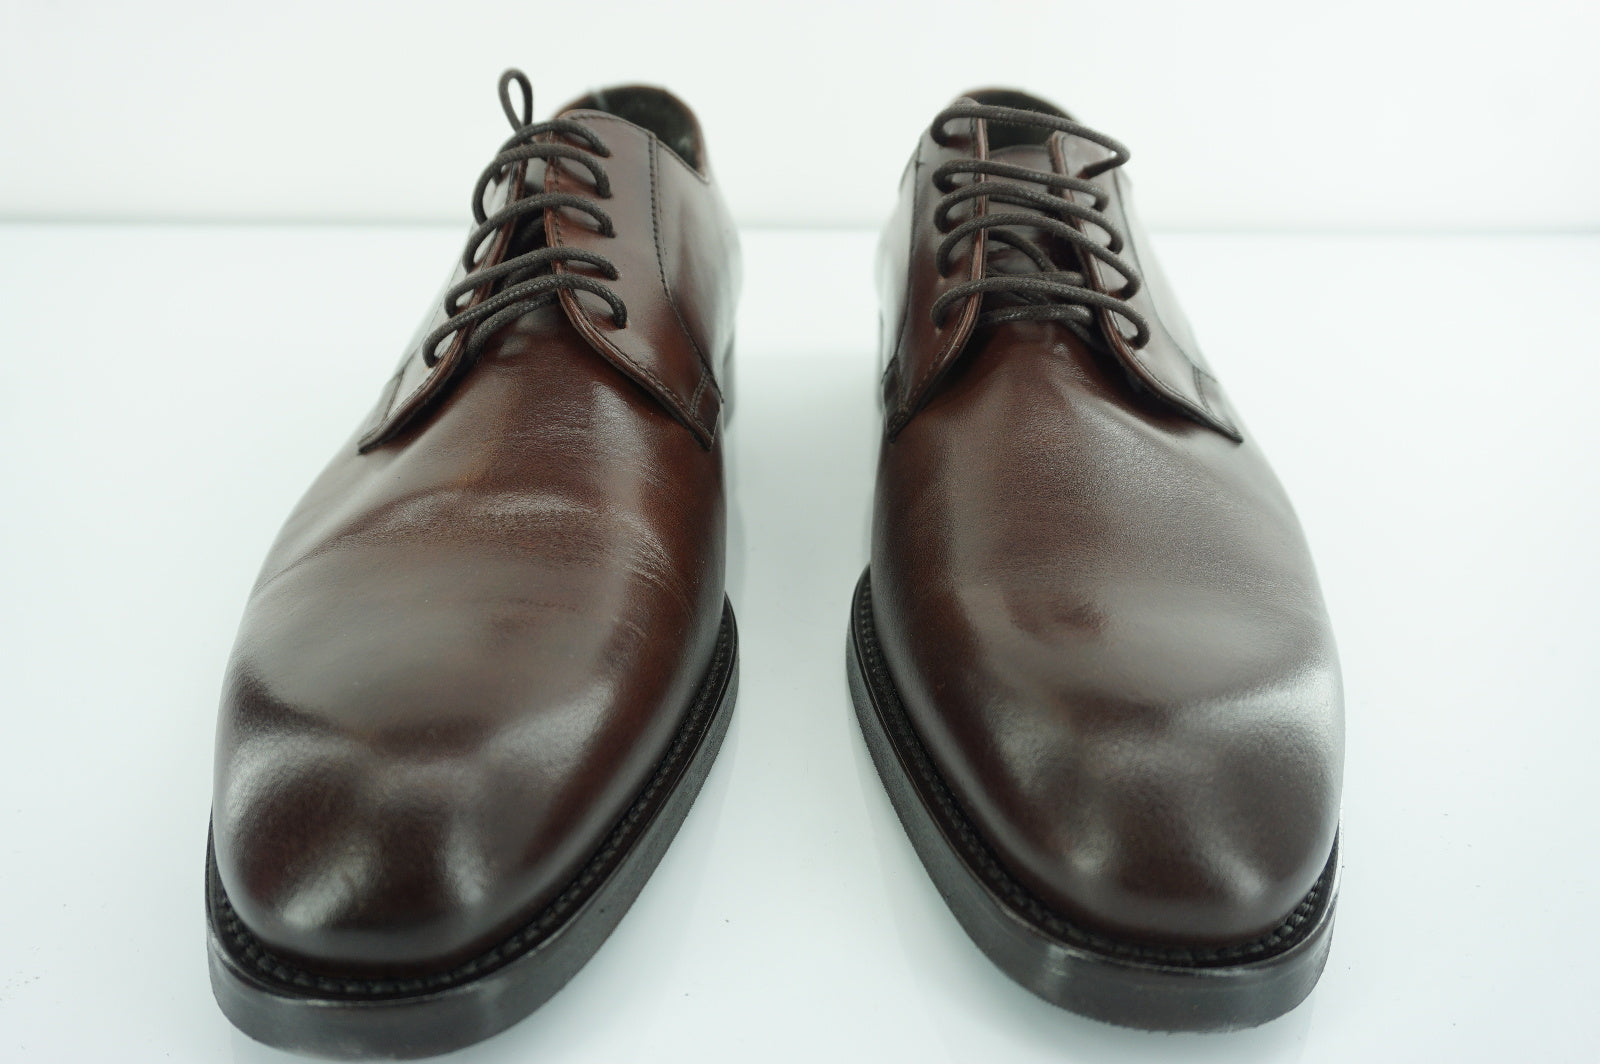 To Boot New York Brown Leather Brampton Plain Toe Oxford Derby SZ 9.5 NIB $395